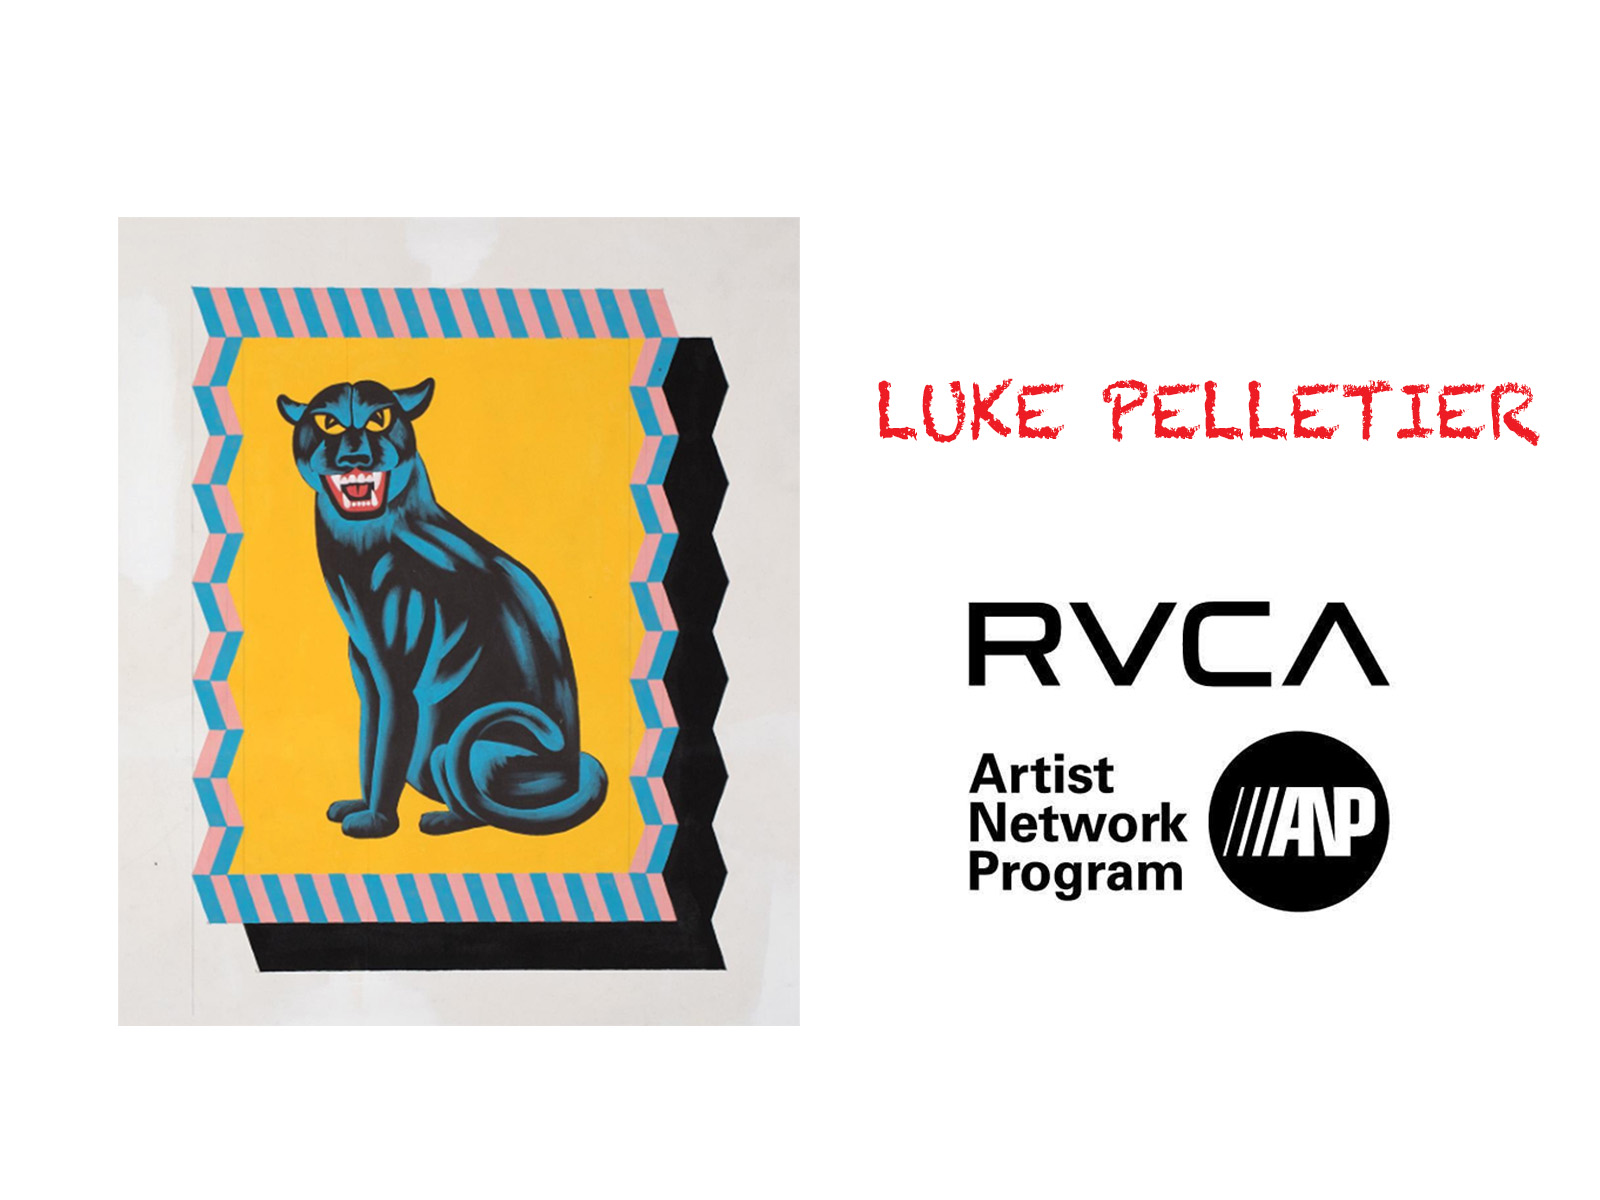 RVCA ANP COLLECTION – LUKE PELLETIER